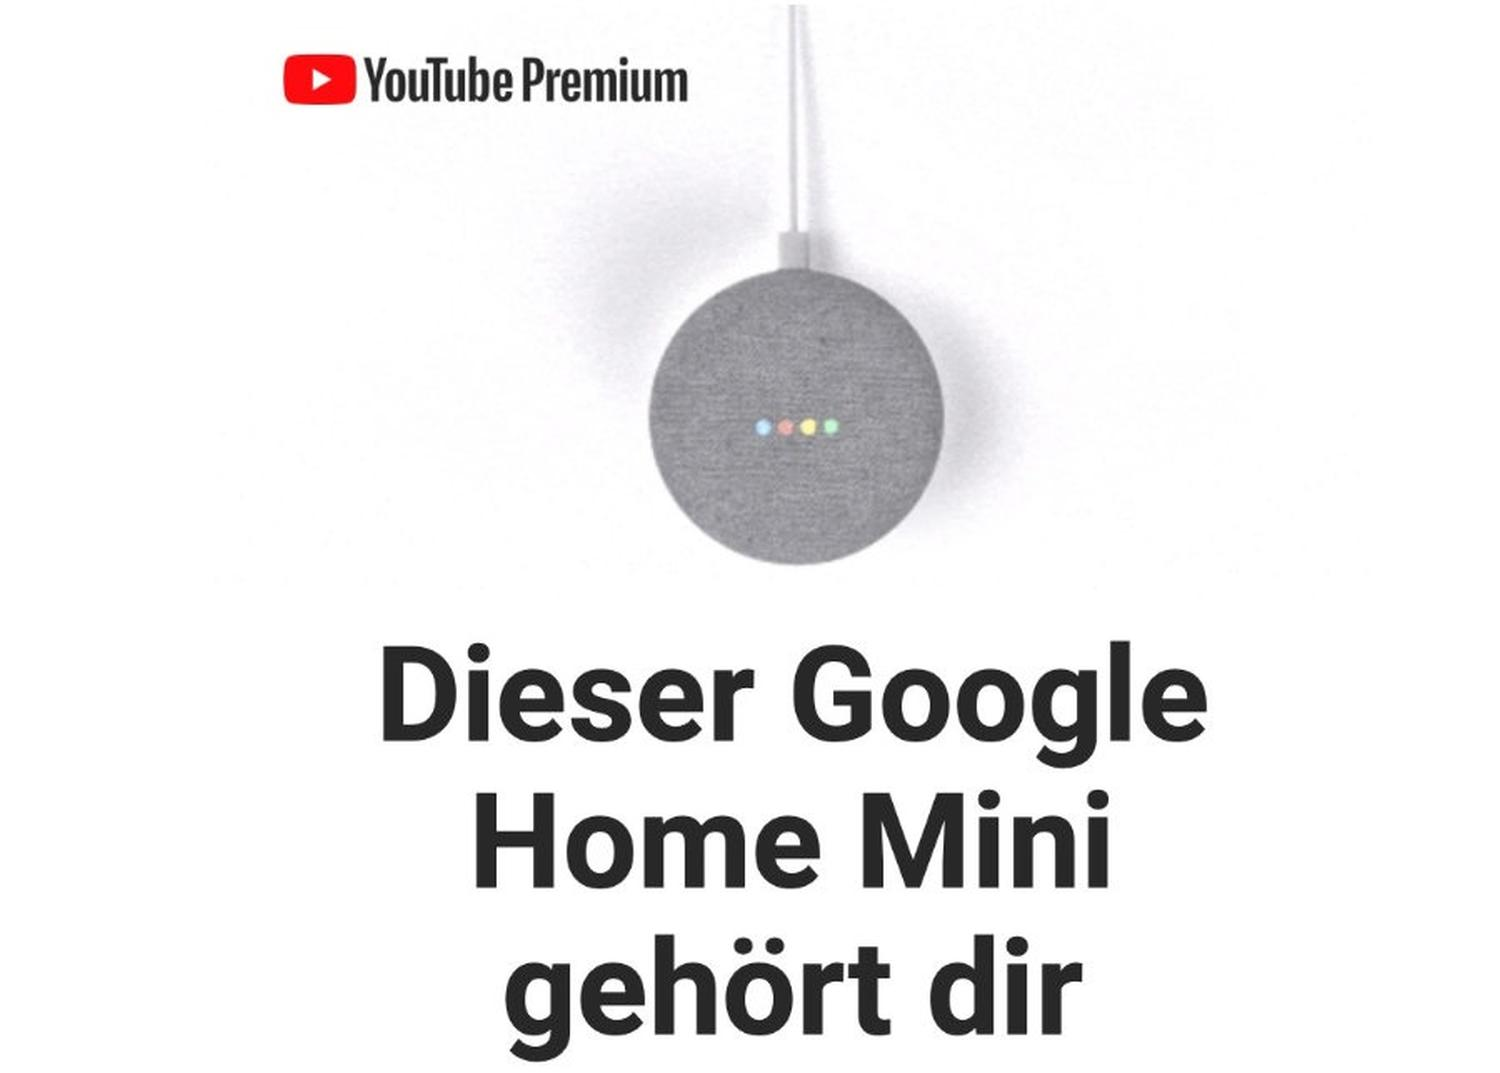 youtube premium google home mini